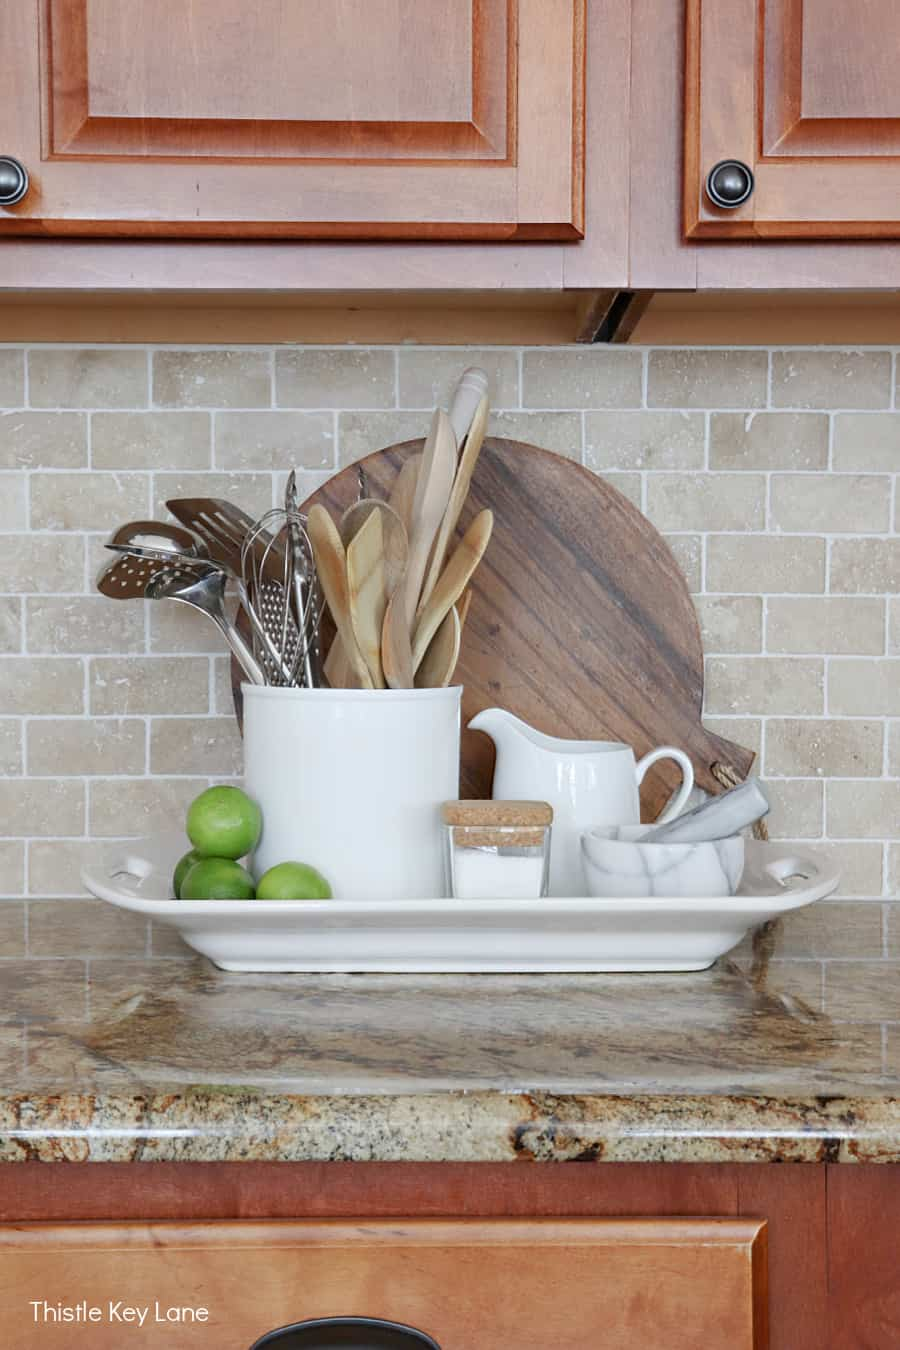 Ironstone tray holding utensils, cooking supplies, round cutting board - Using Trays To Control Kitchen Clutter.